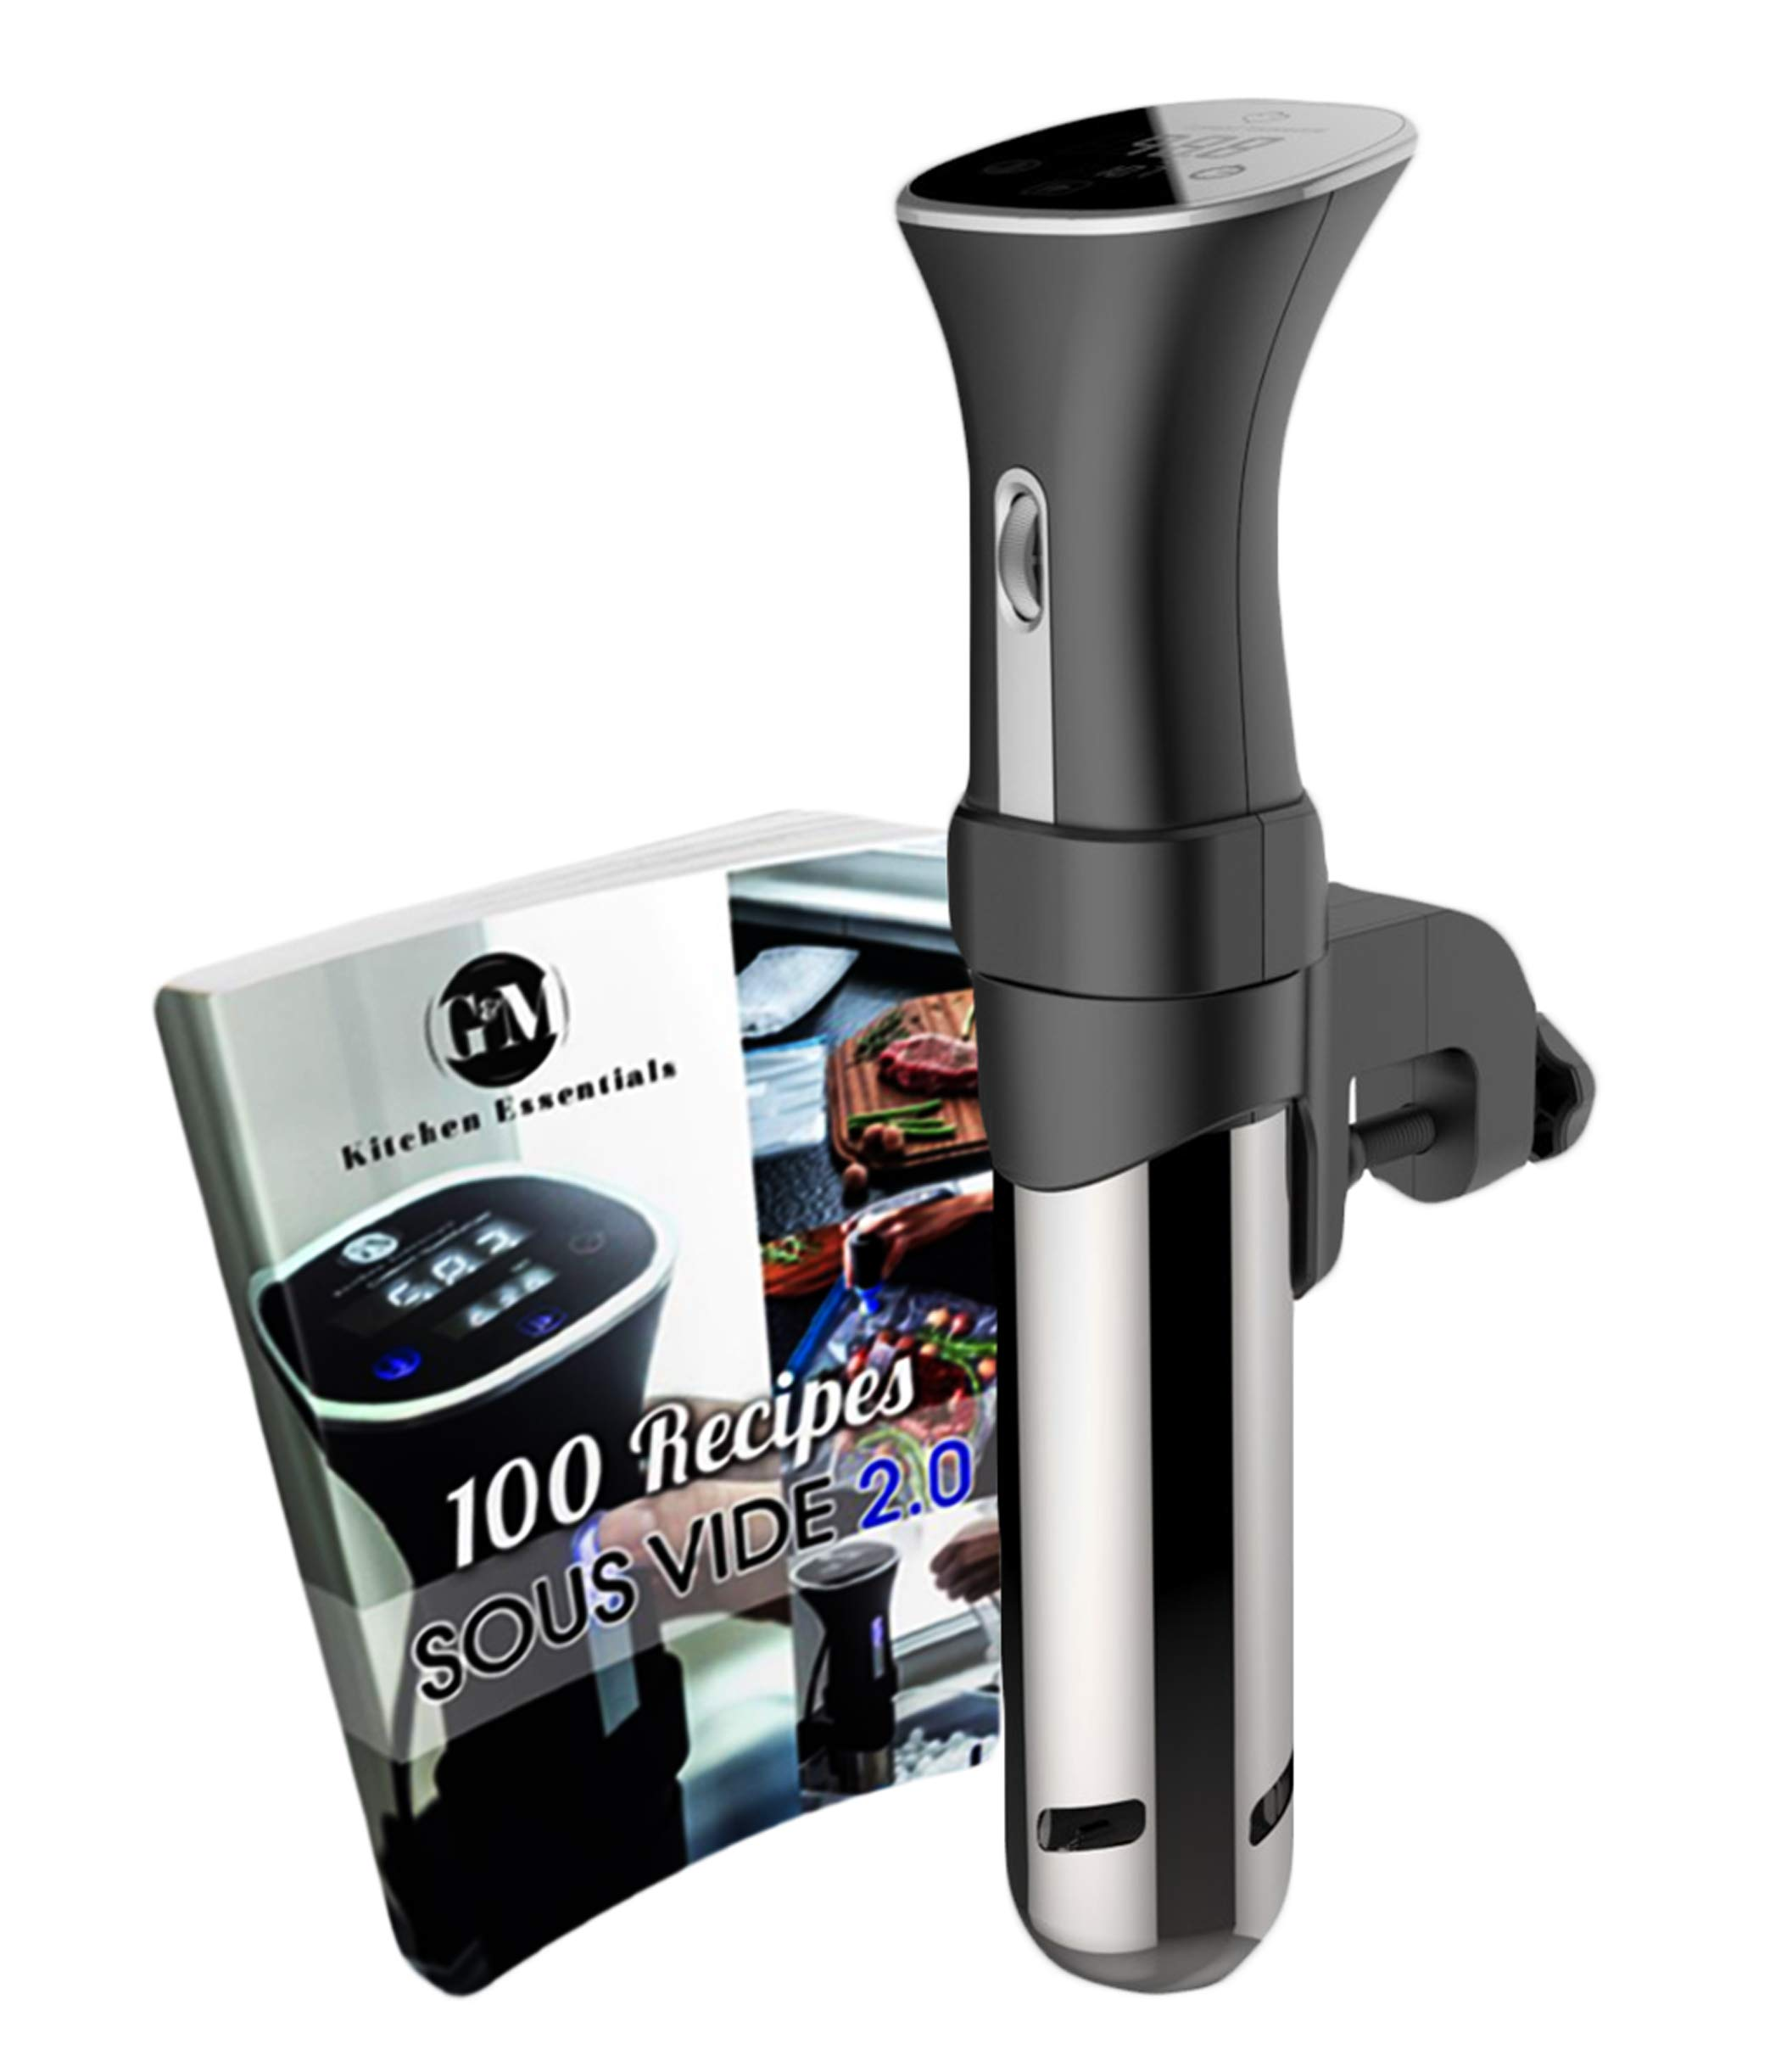 Sous Vide cooker Machine Thermal Immersion Circulator: Precision and Temperature Controller for Easy, Healthy & Even Cooking - BONUS 100 RECIPE COOKBOOK - Black and Stainless, 120 Volts.